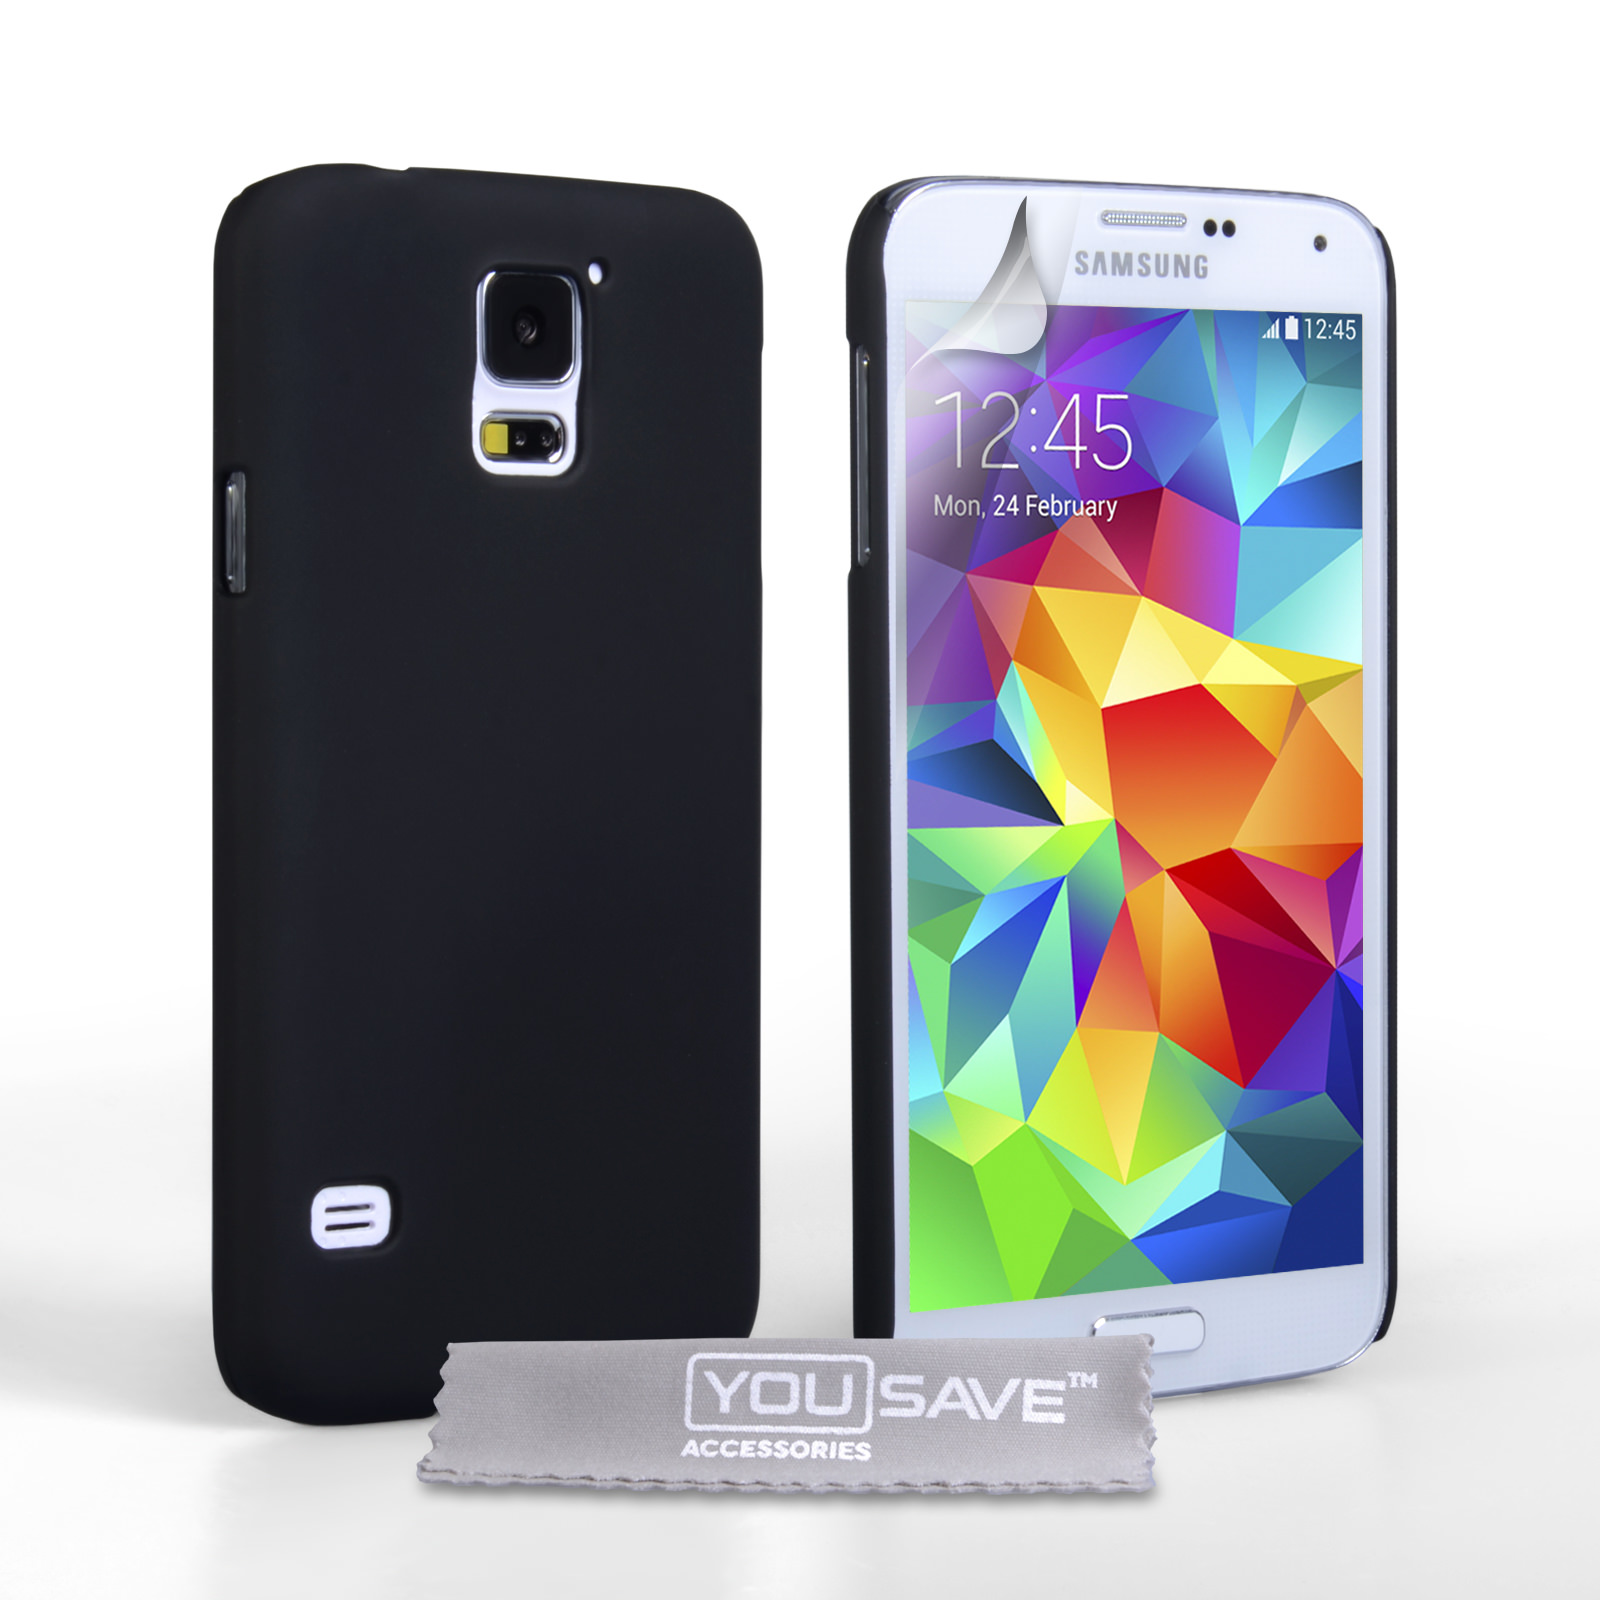 YouSave Accessories Samsung Galaxy S5 Hard Hybrid Case - Black